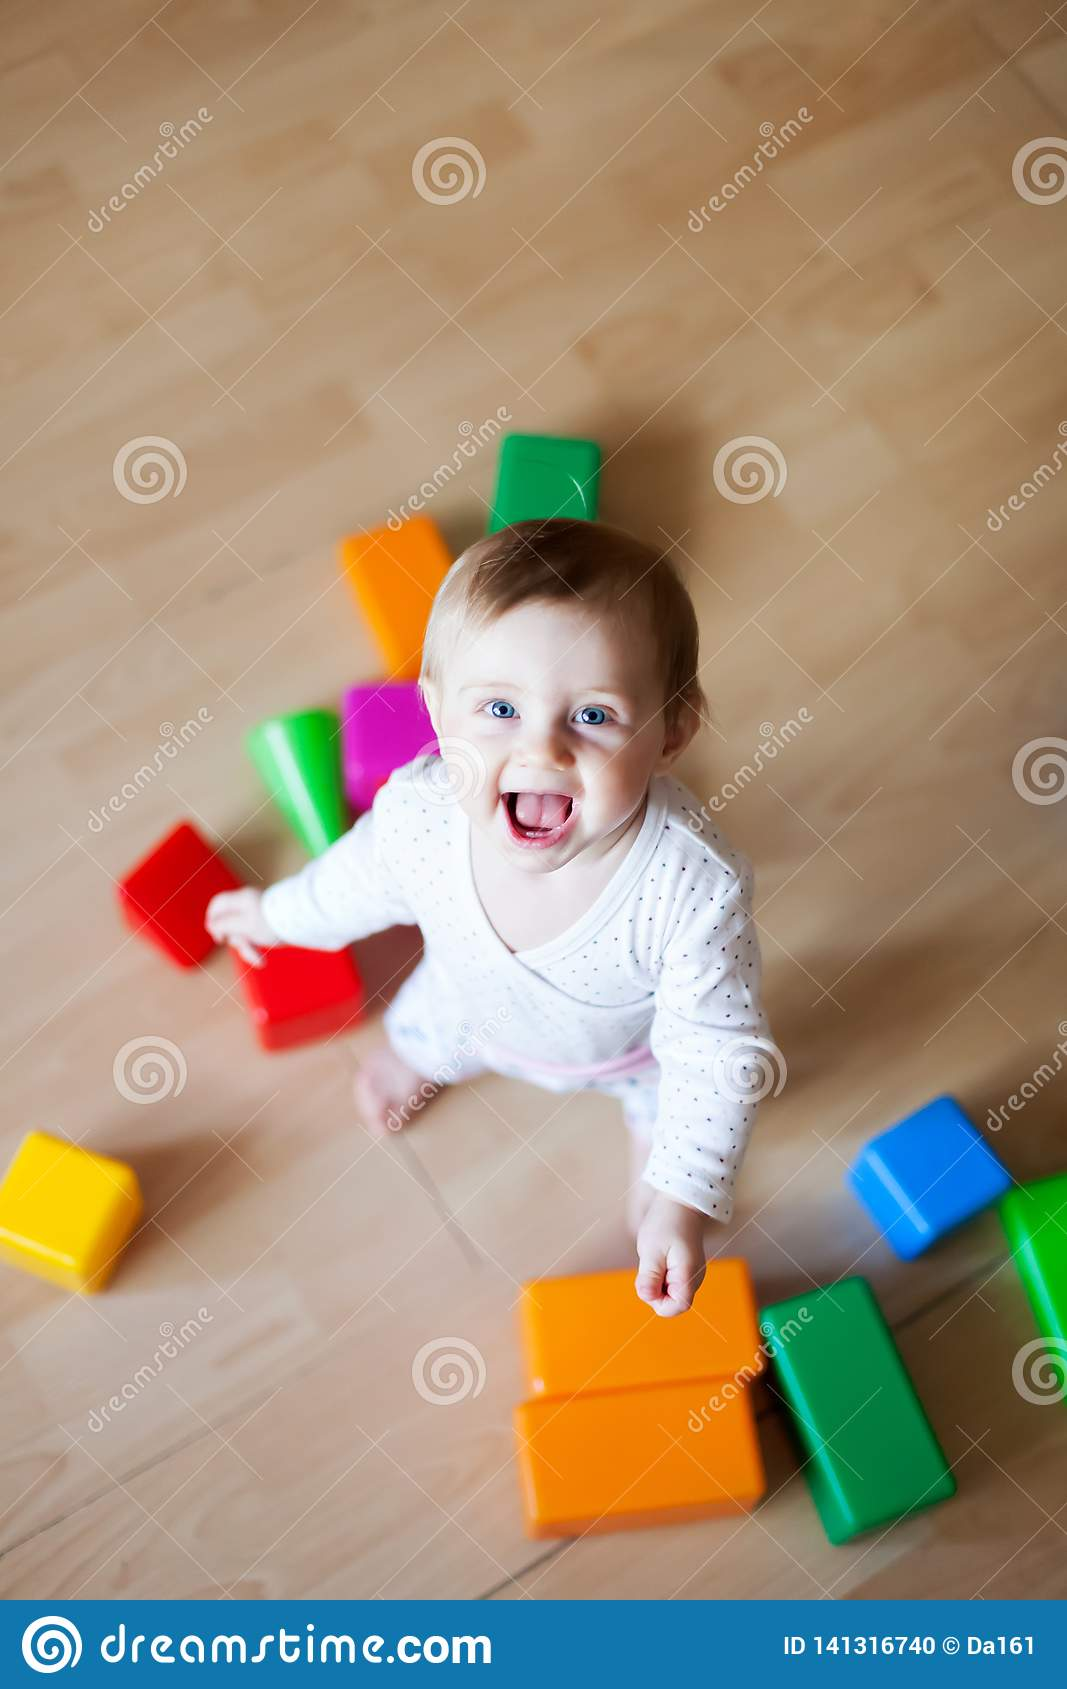 Small child of 9 months playing on floor of house